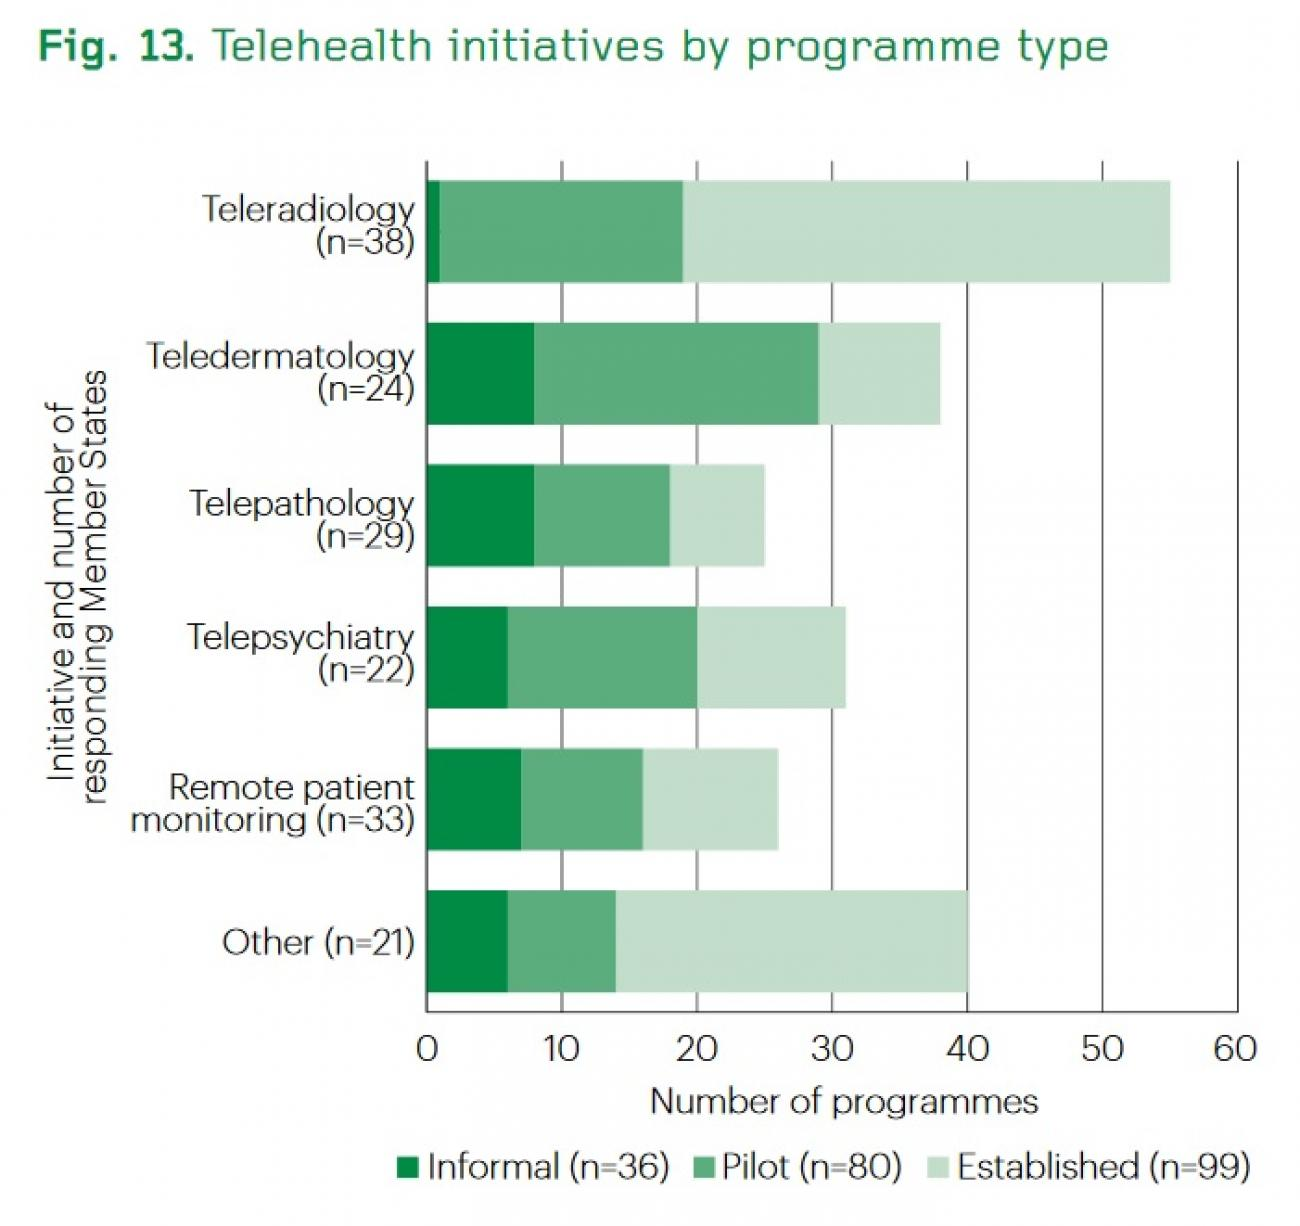 Telehealth_initiatives_by_programme_type_(WHO_2015)